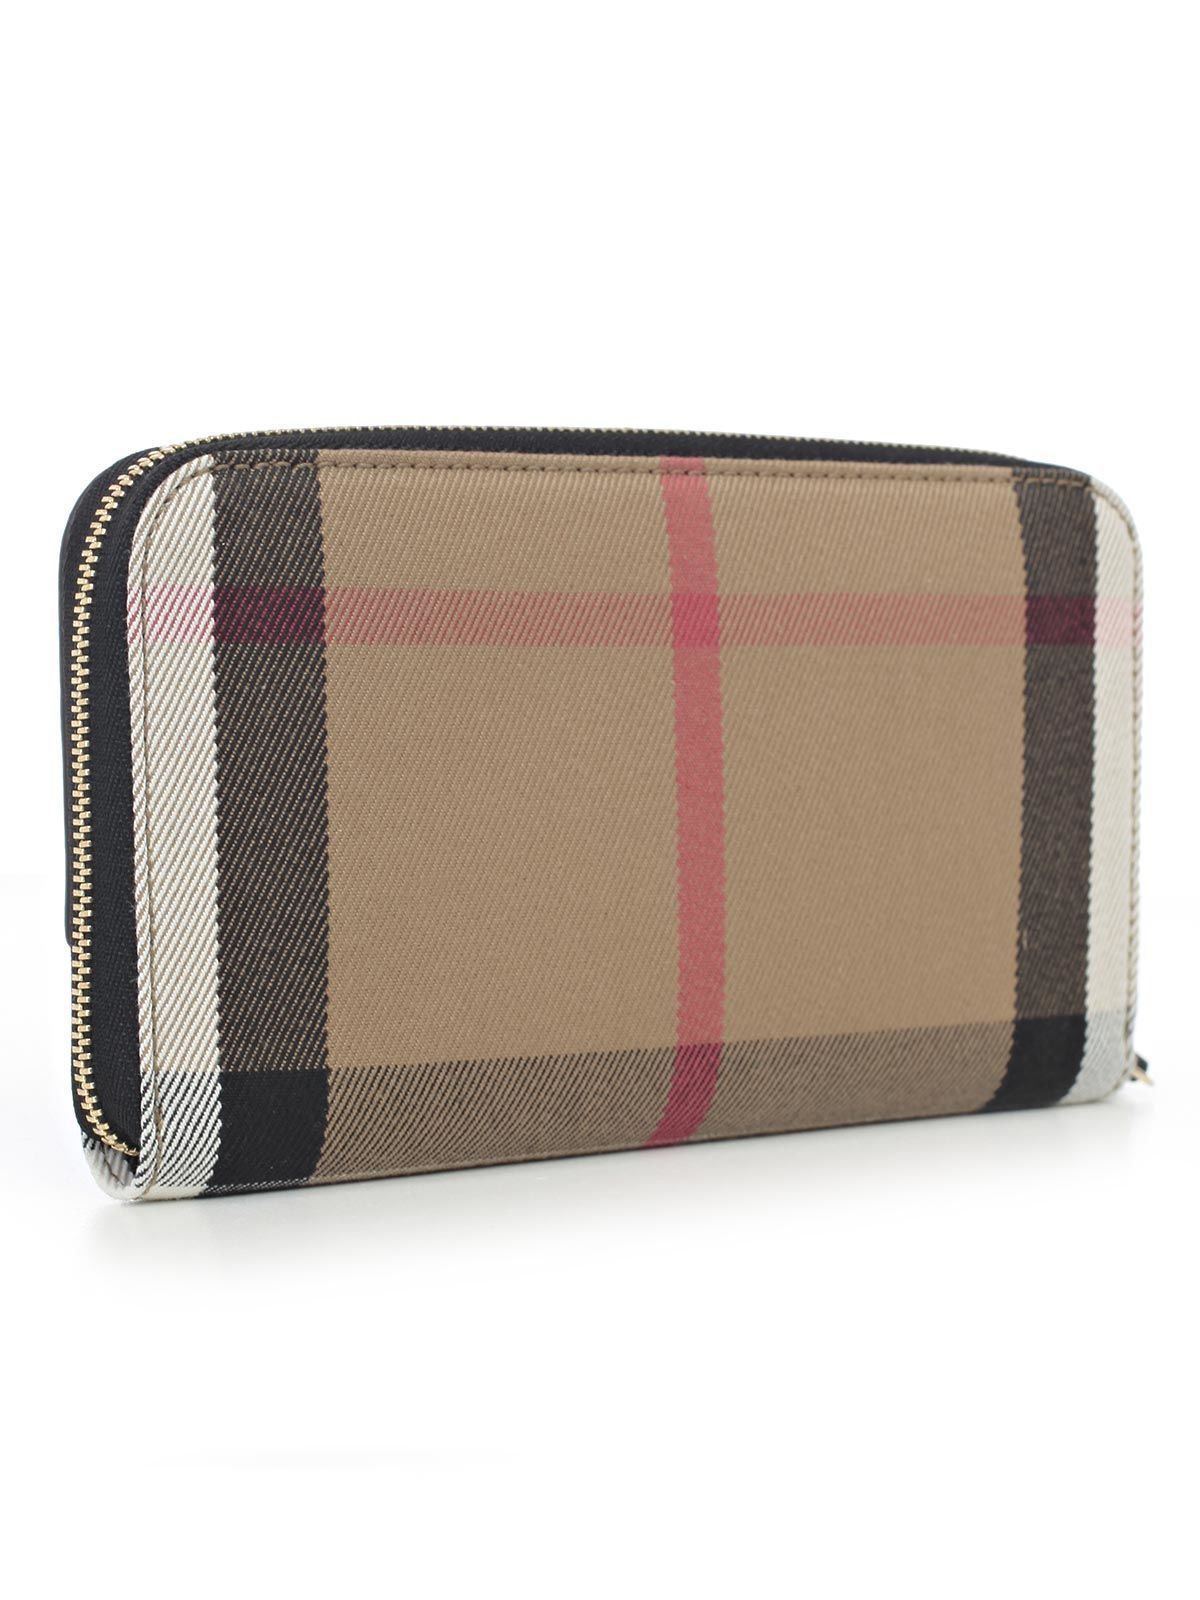 送料込 Burberry Wallet 財布